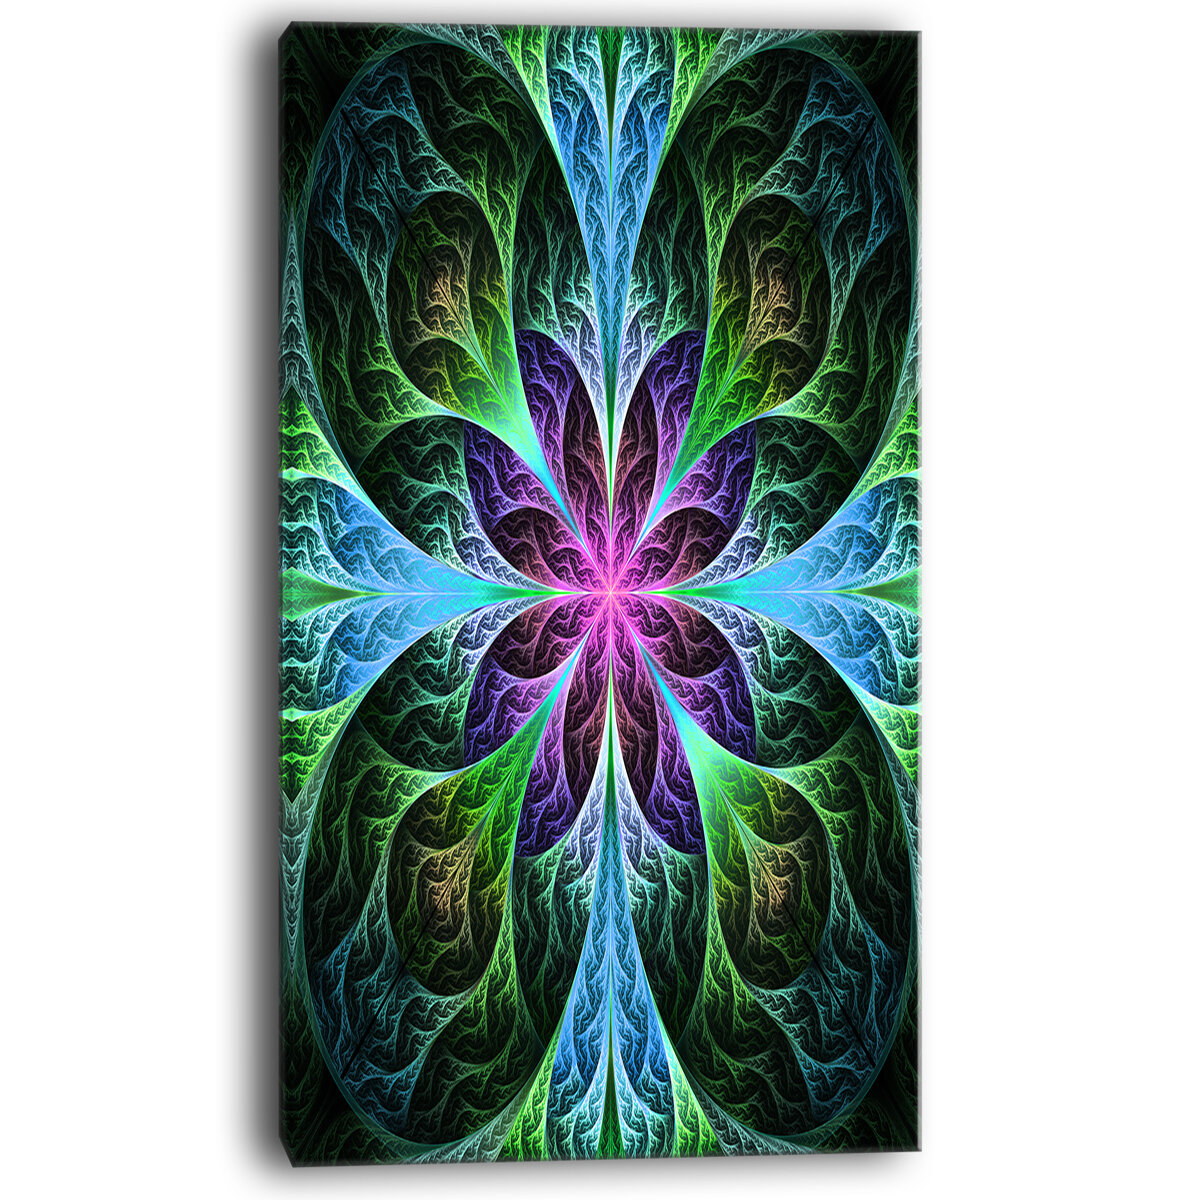 Designart Glowing Blue And Green Fractal Flower Pattern Graphic Art On Wrapped Canvas Wayfair